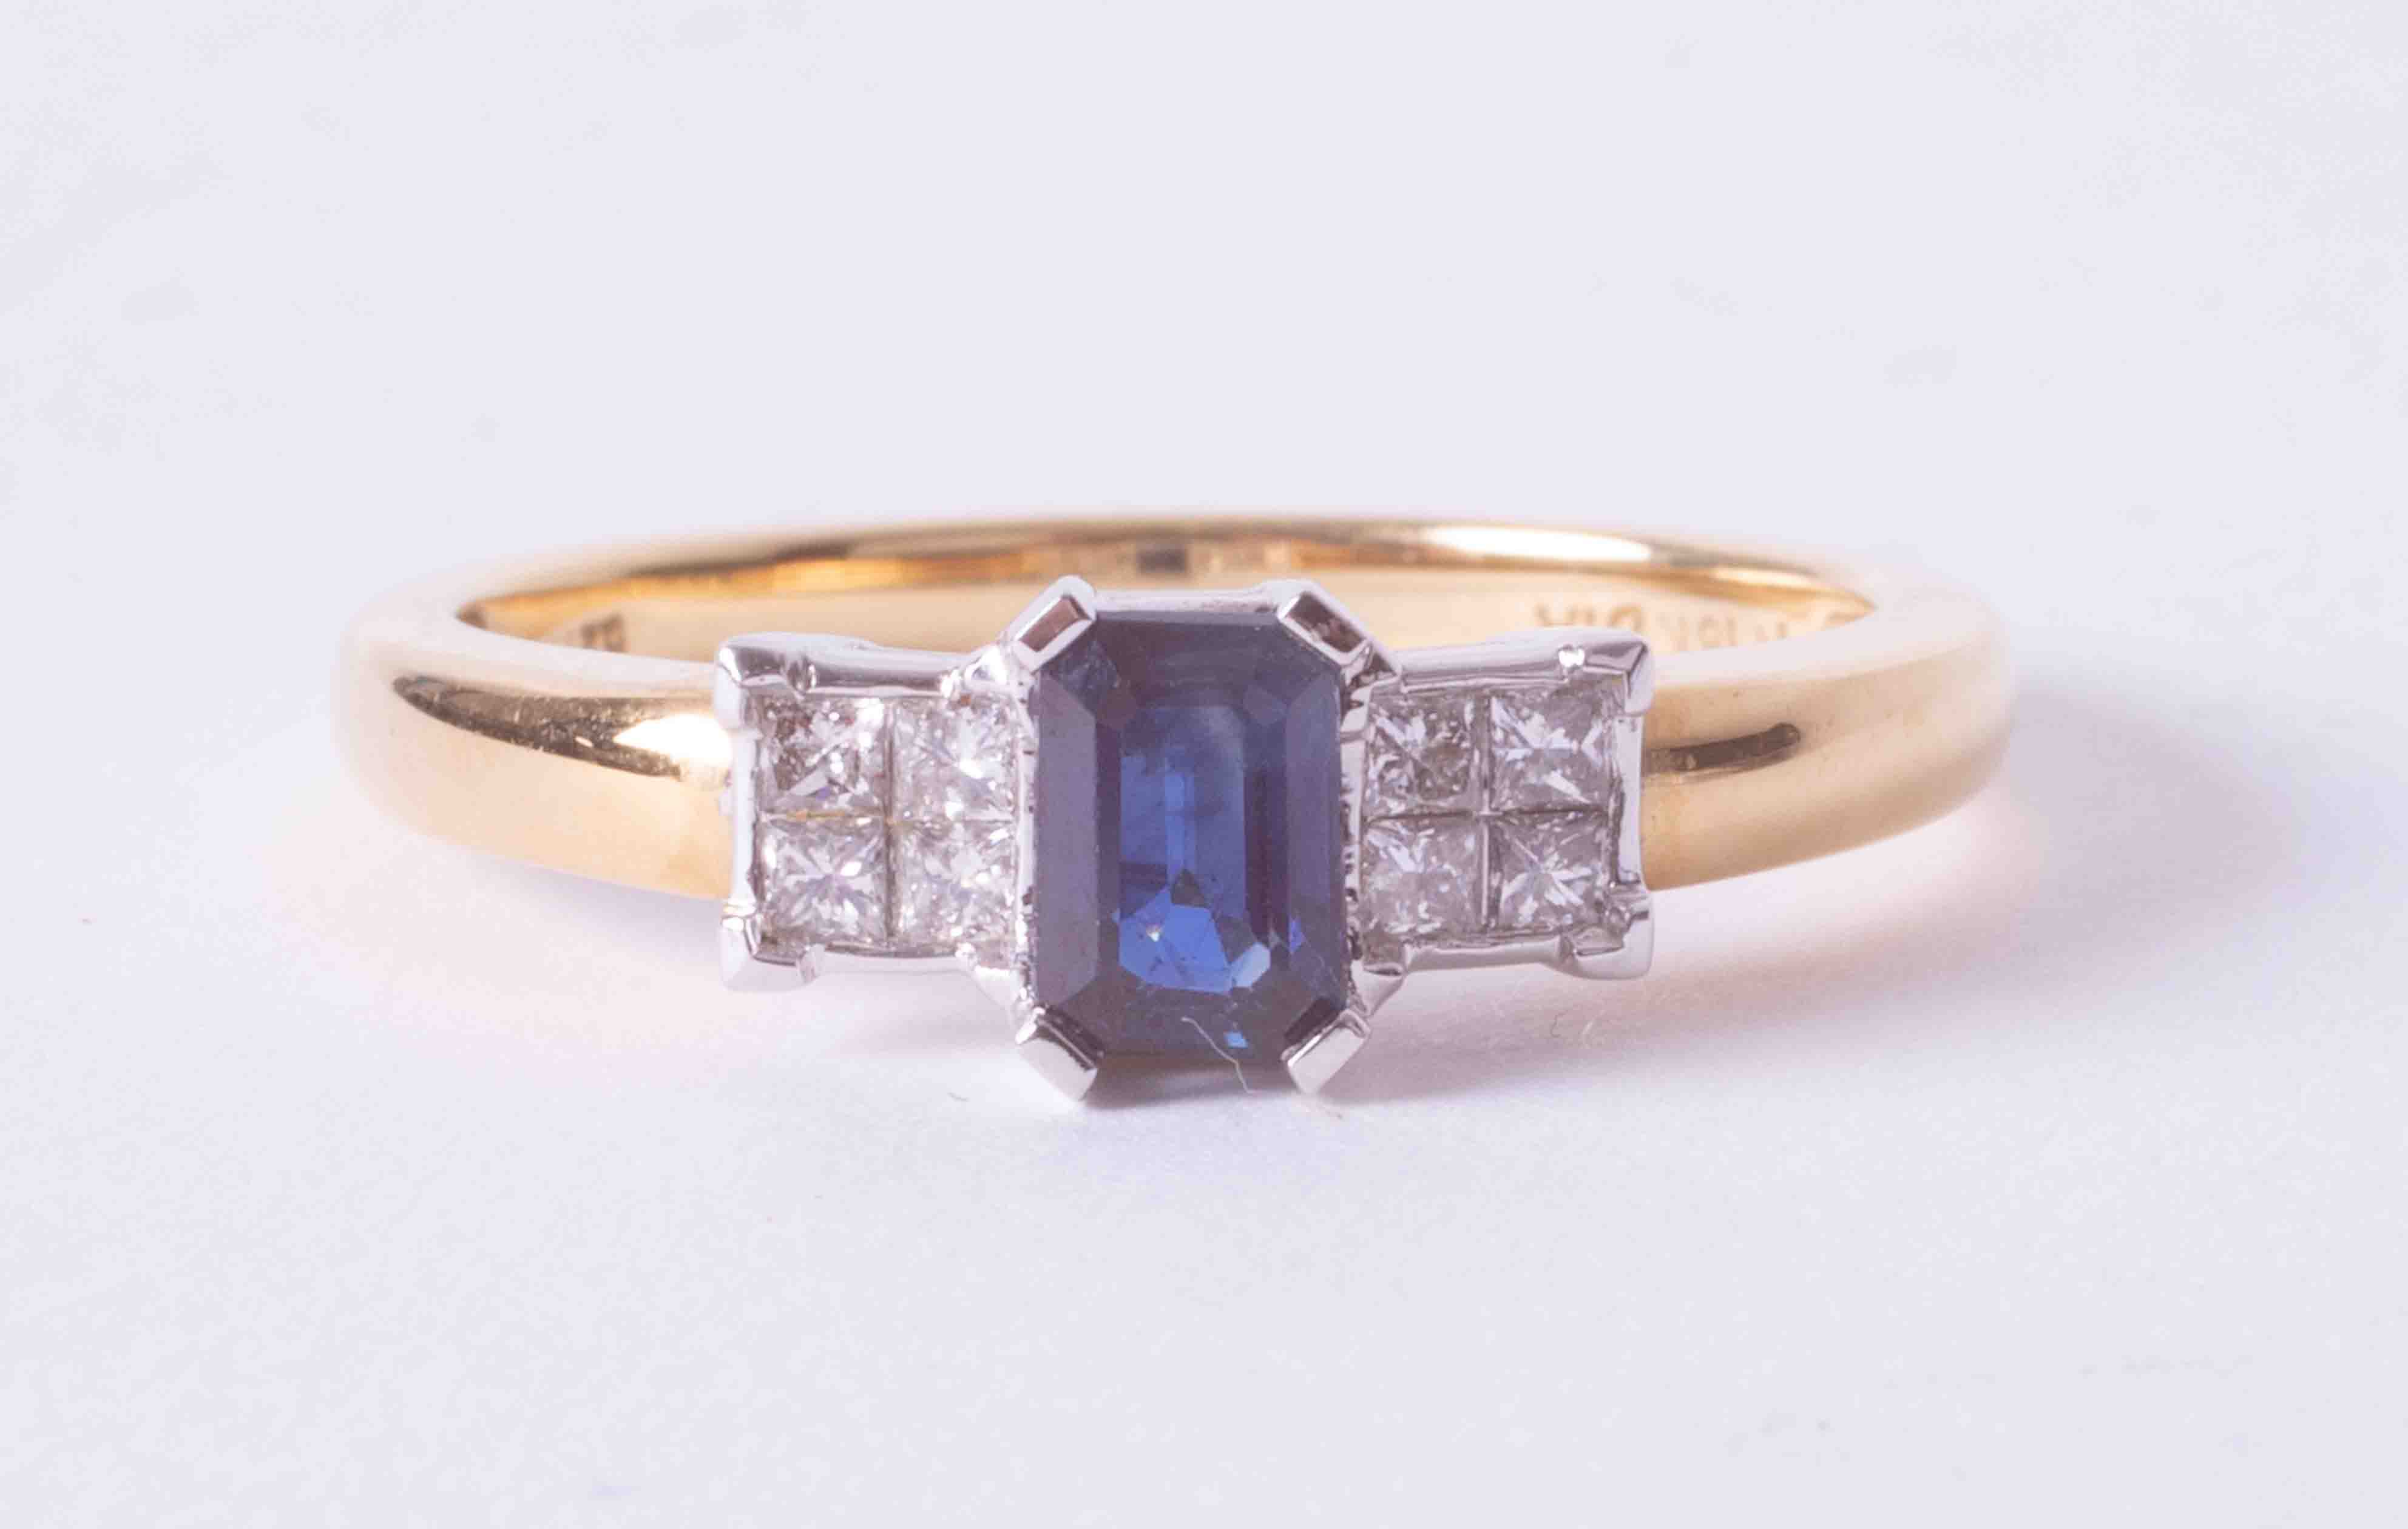 An 18ct yellow & white gold ring set approx. 0.50 carat emerald cut sapphire & 0.21ct total weight